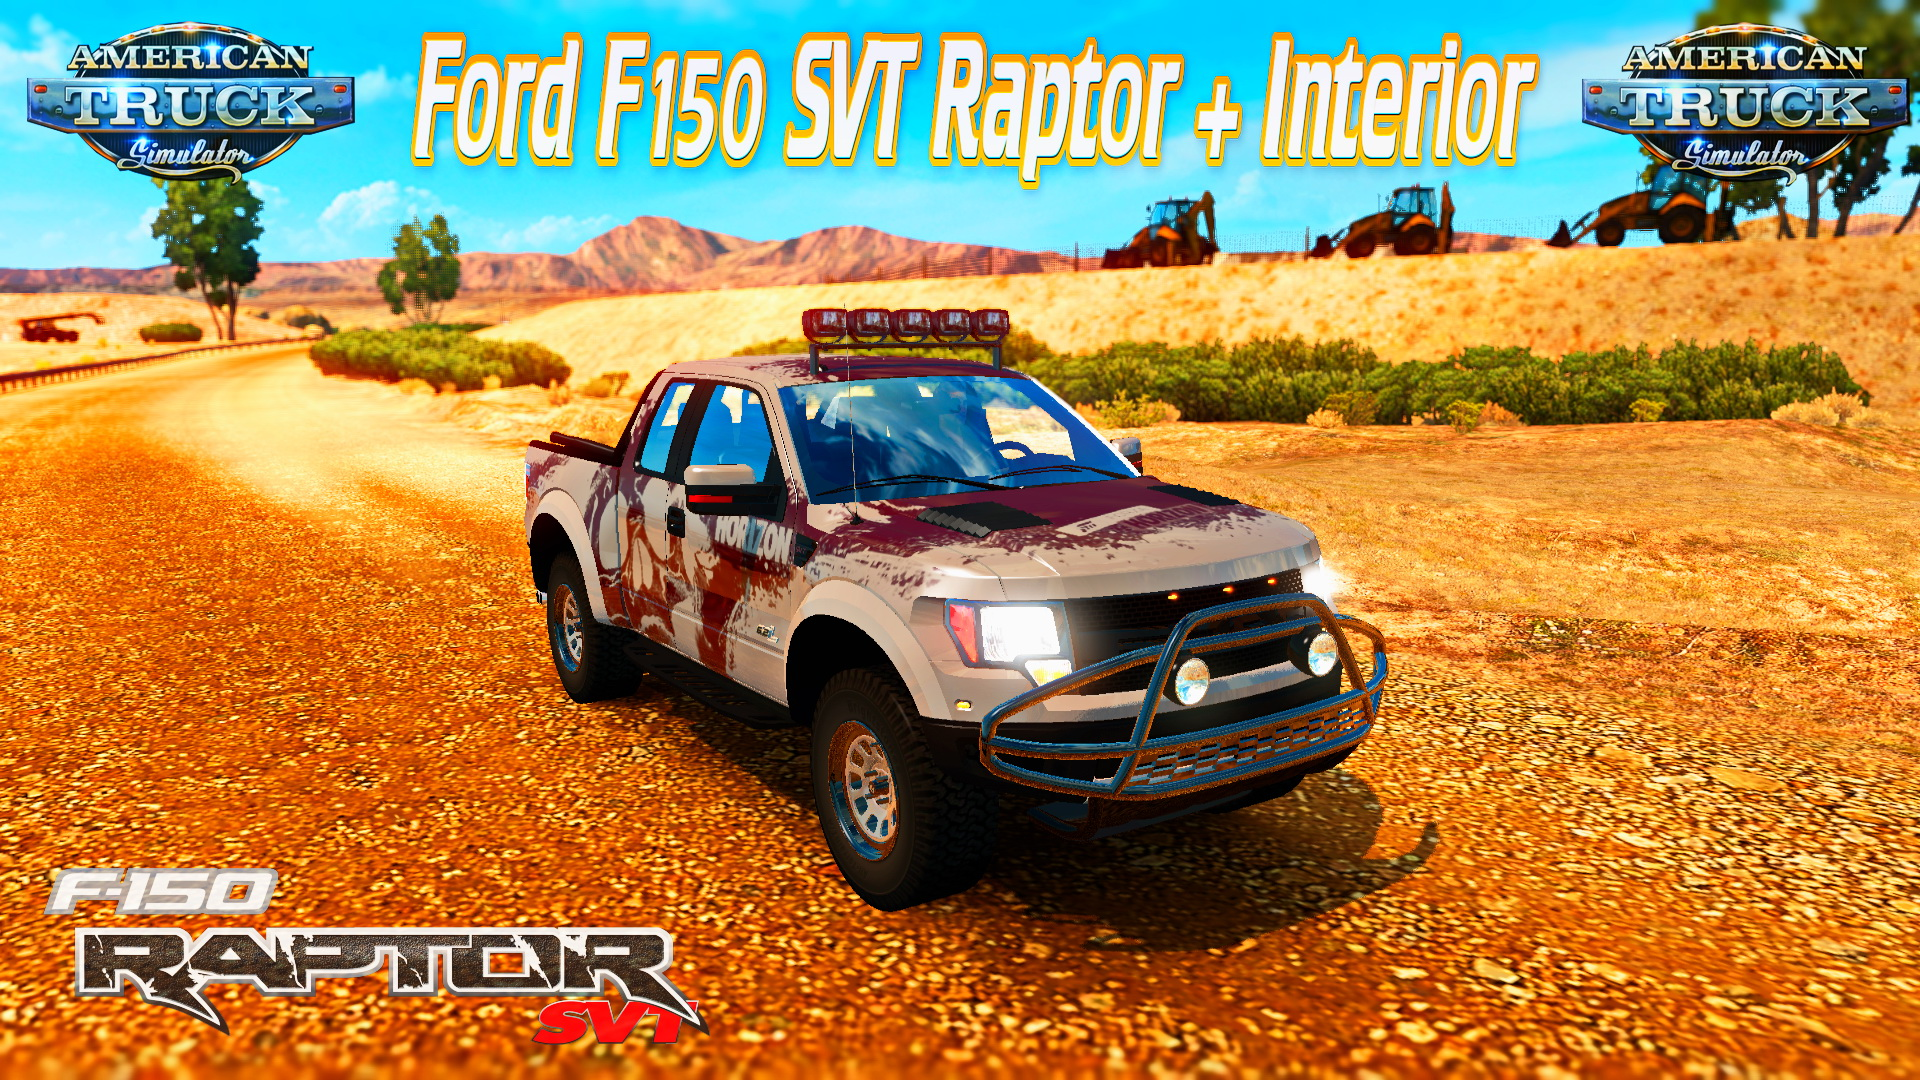 Ford F150 Raptor SVT + Interior v1.4 for ATS